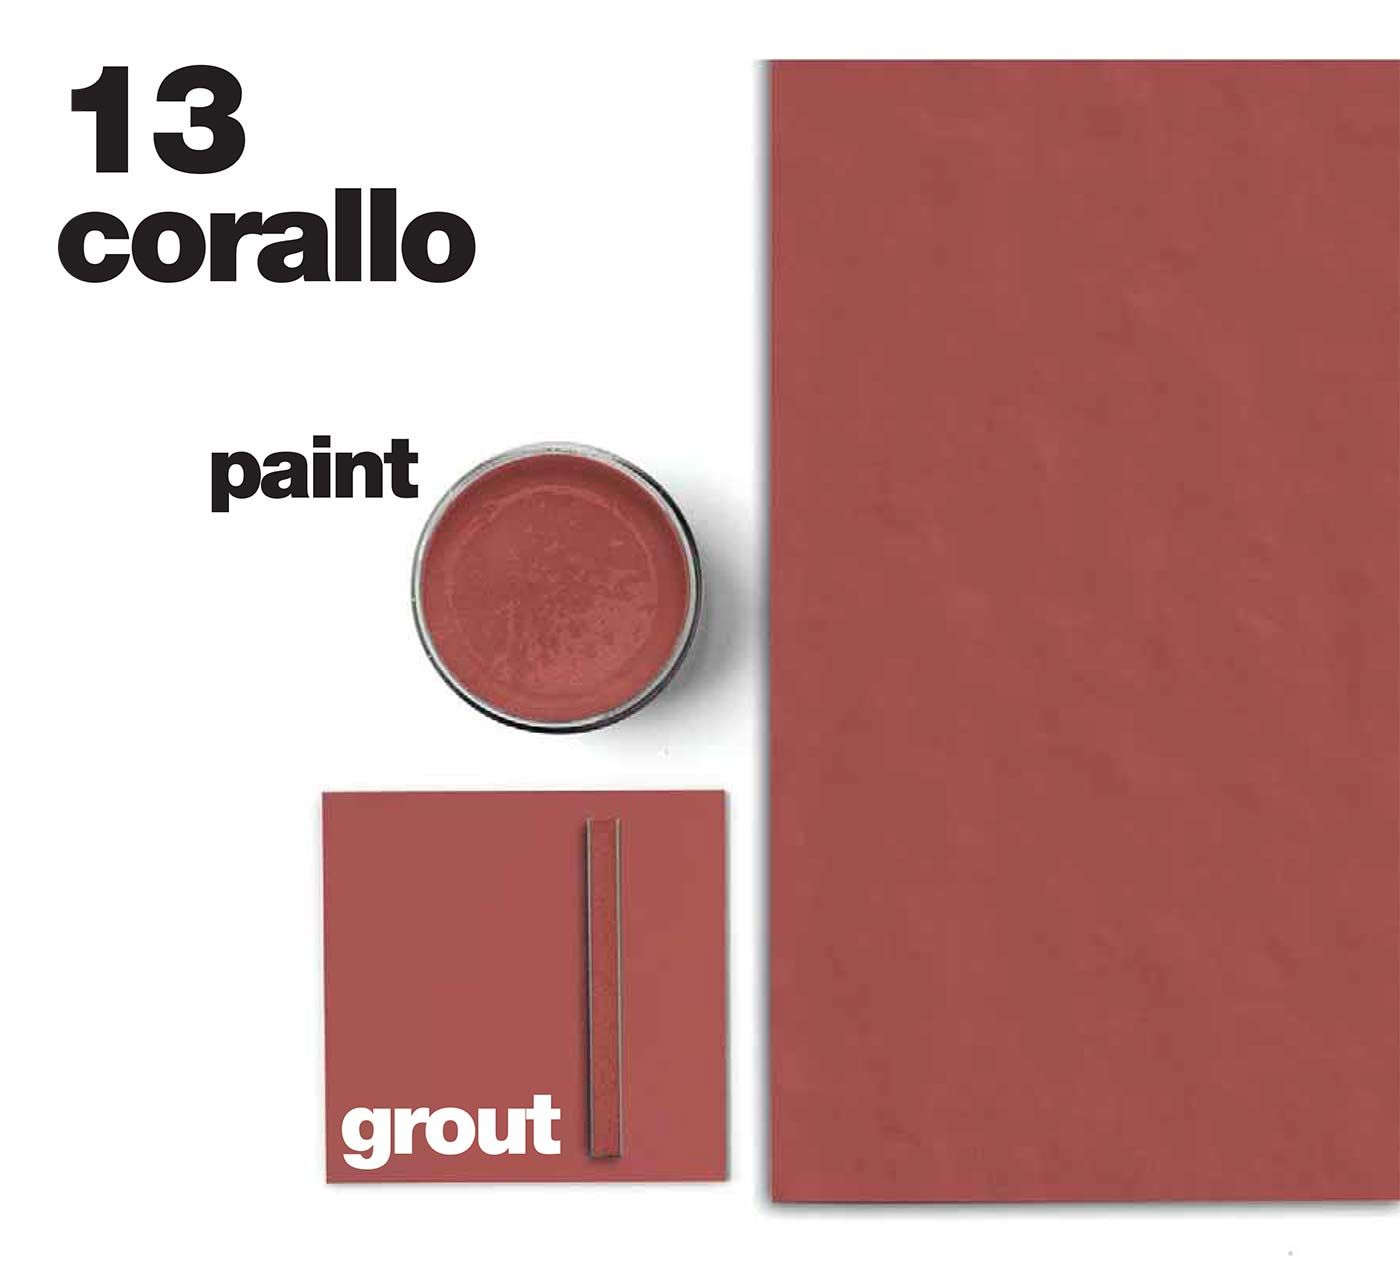 NEUTRA 6.0 - A new version of the series that has marked the origin of the Casamood brand. After a successful decade Neutra has expanded its family to become an increasingly evolved container. The palette is enriched with vibrant colours and oversized formats, coordinated stucco and painting enrich the proposed total look. #corallo #colours #wall #coverings